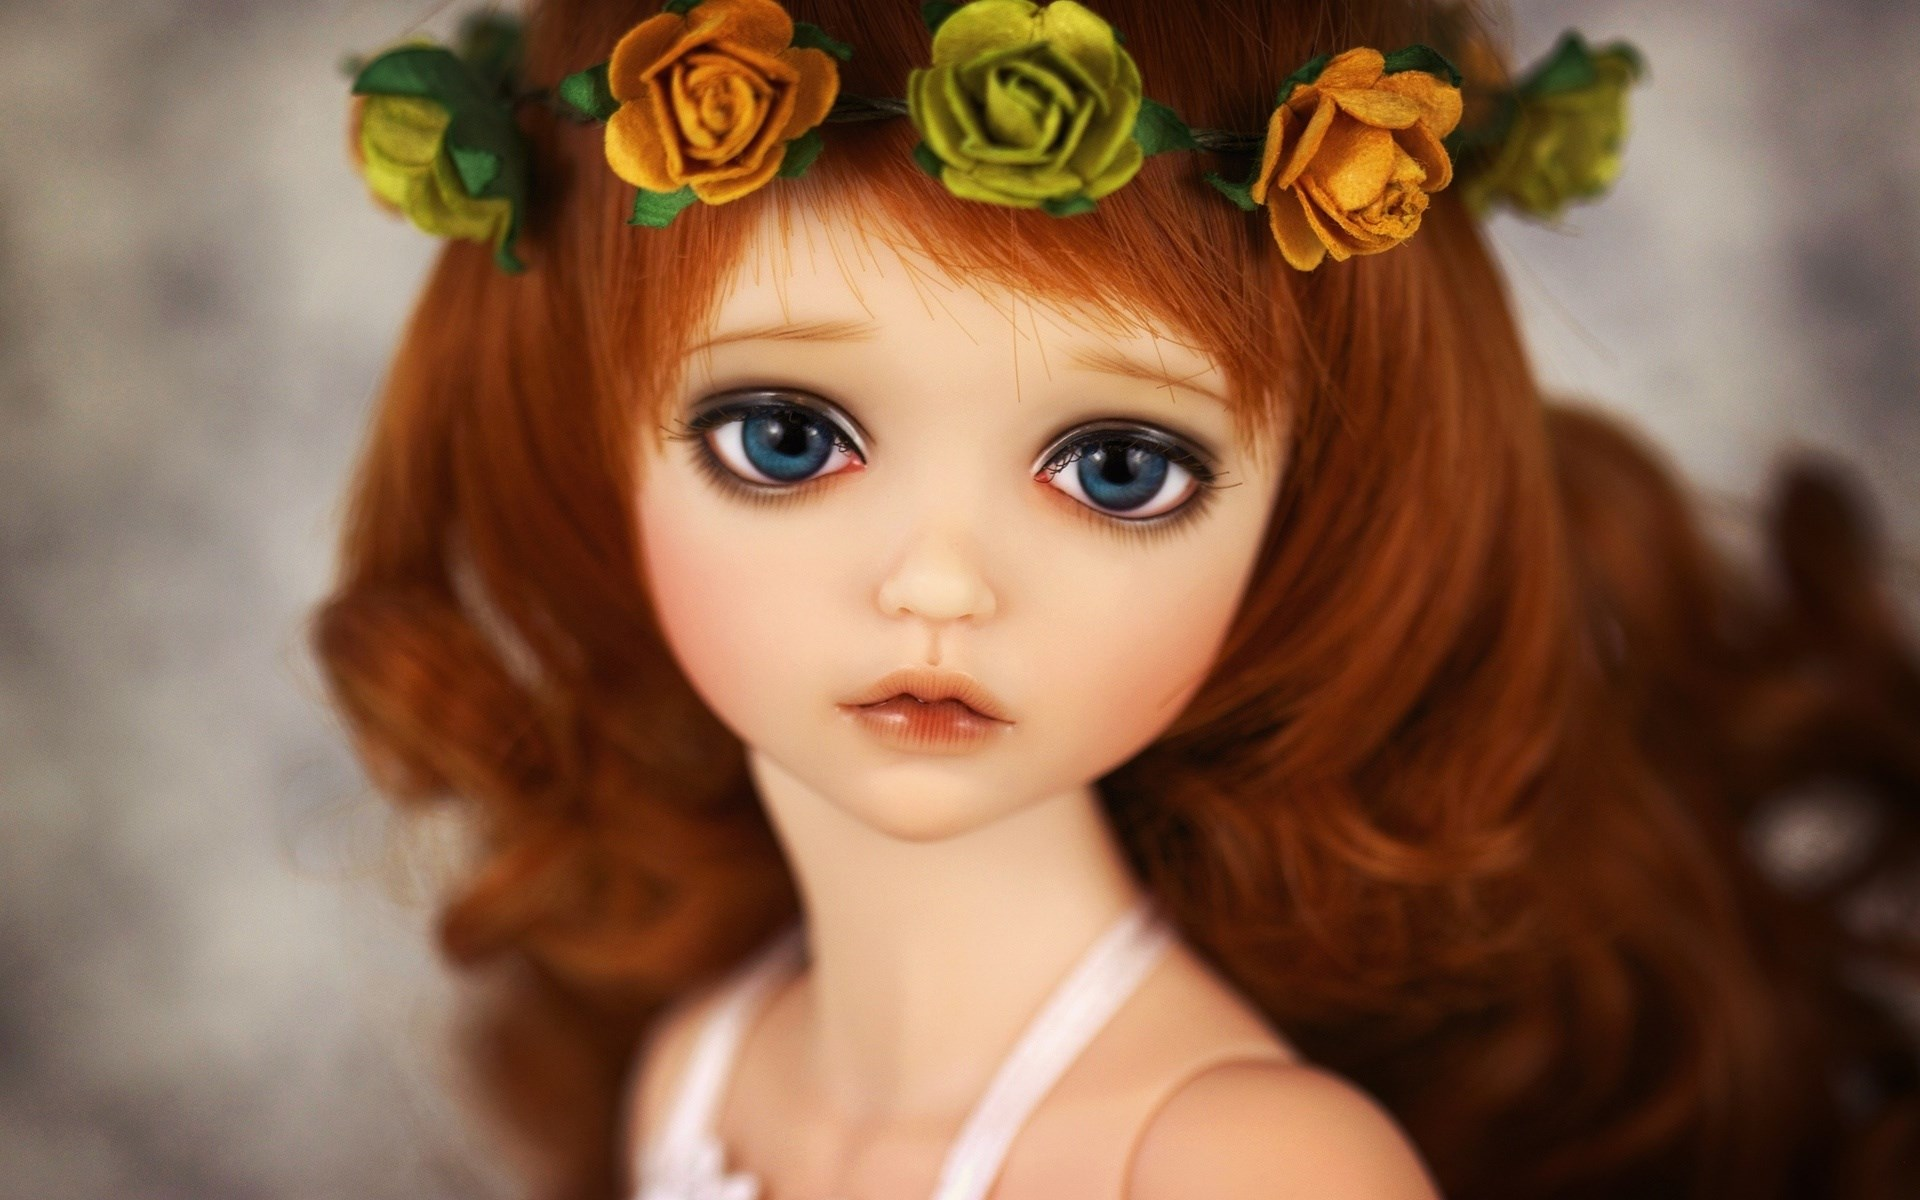 Cute Kids Wallpapers For Whatsapp Profile Doll Flower Crown Background Wallpaper High Definition